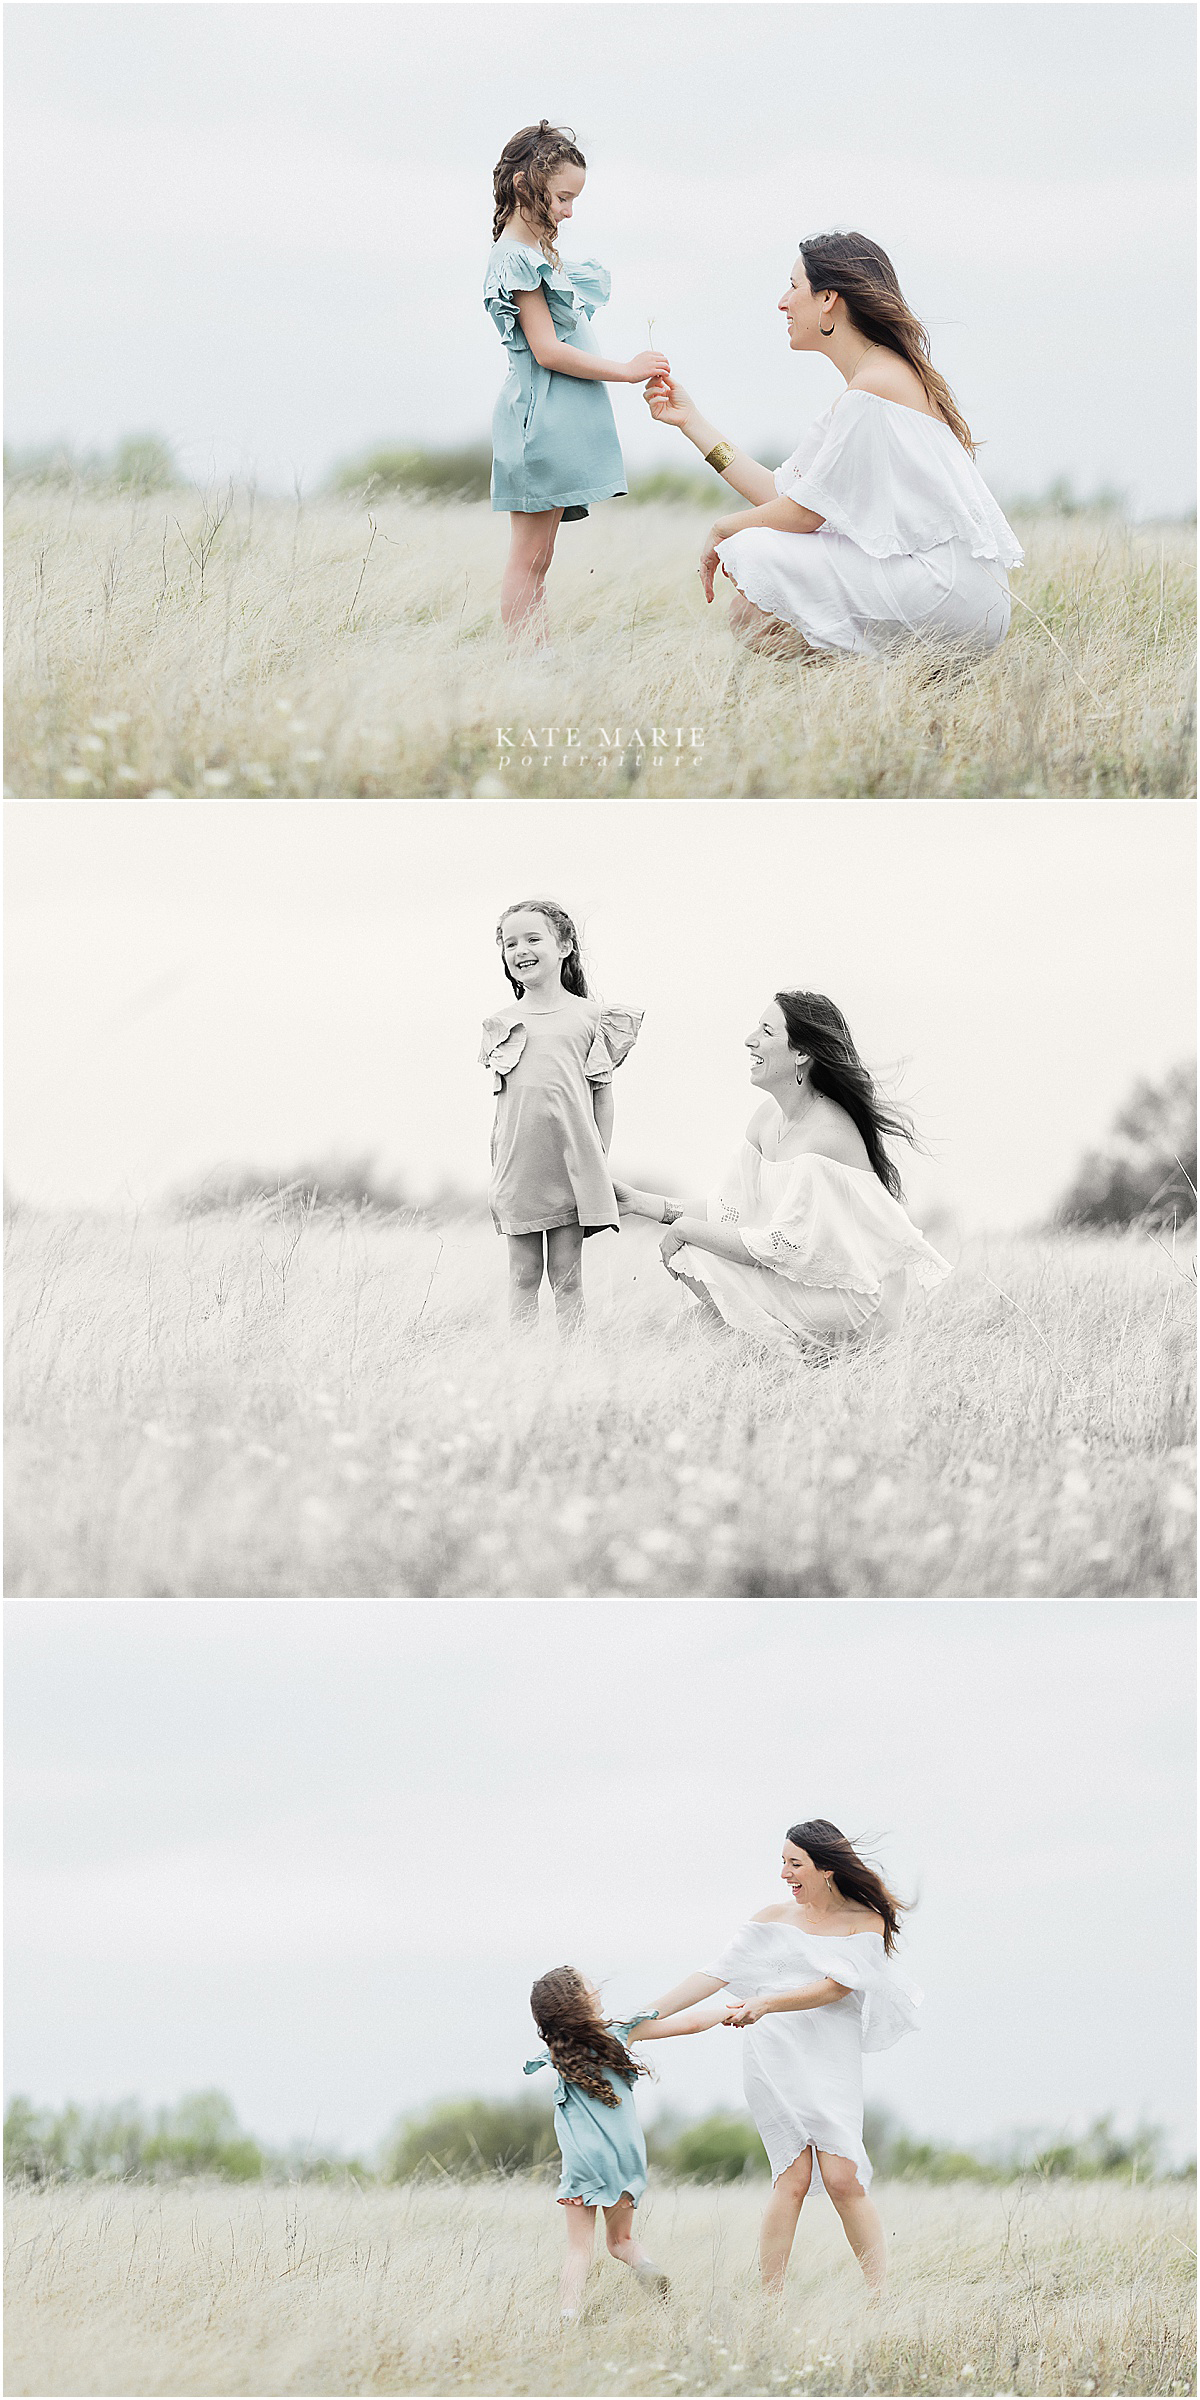 Dallas_Family_Photographer_Motherhood_Flower_Mound_Photographer_kate Marie portraiture lm_13.jpg